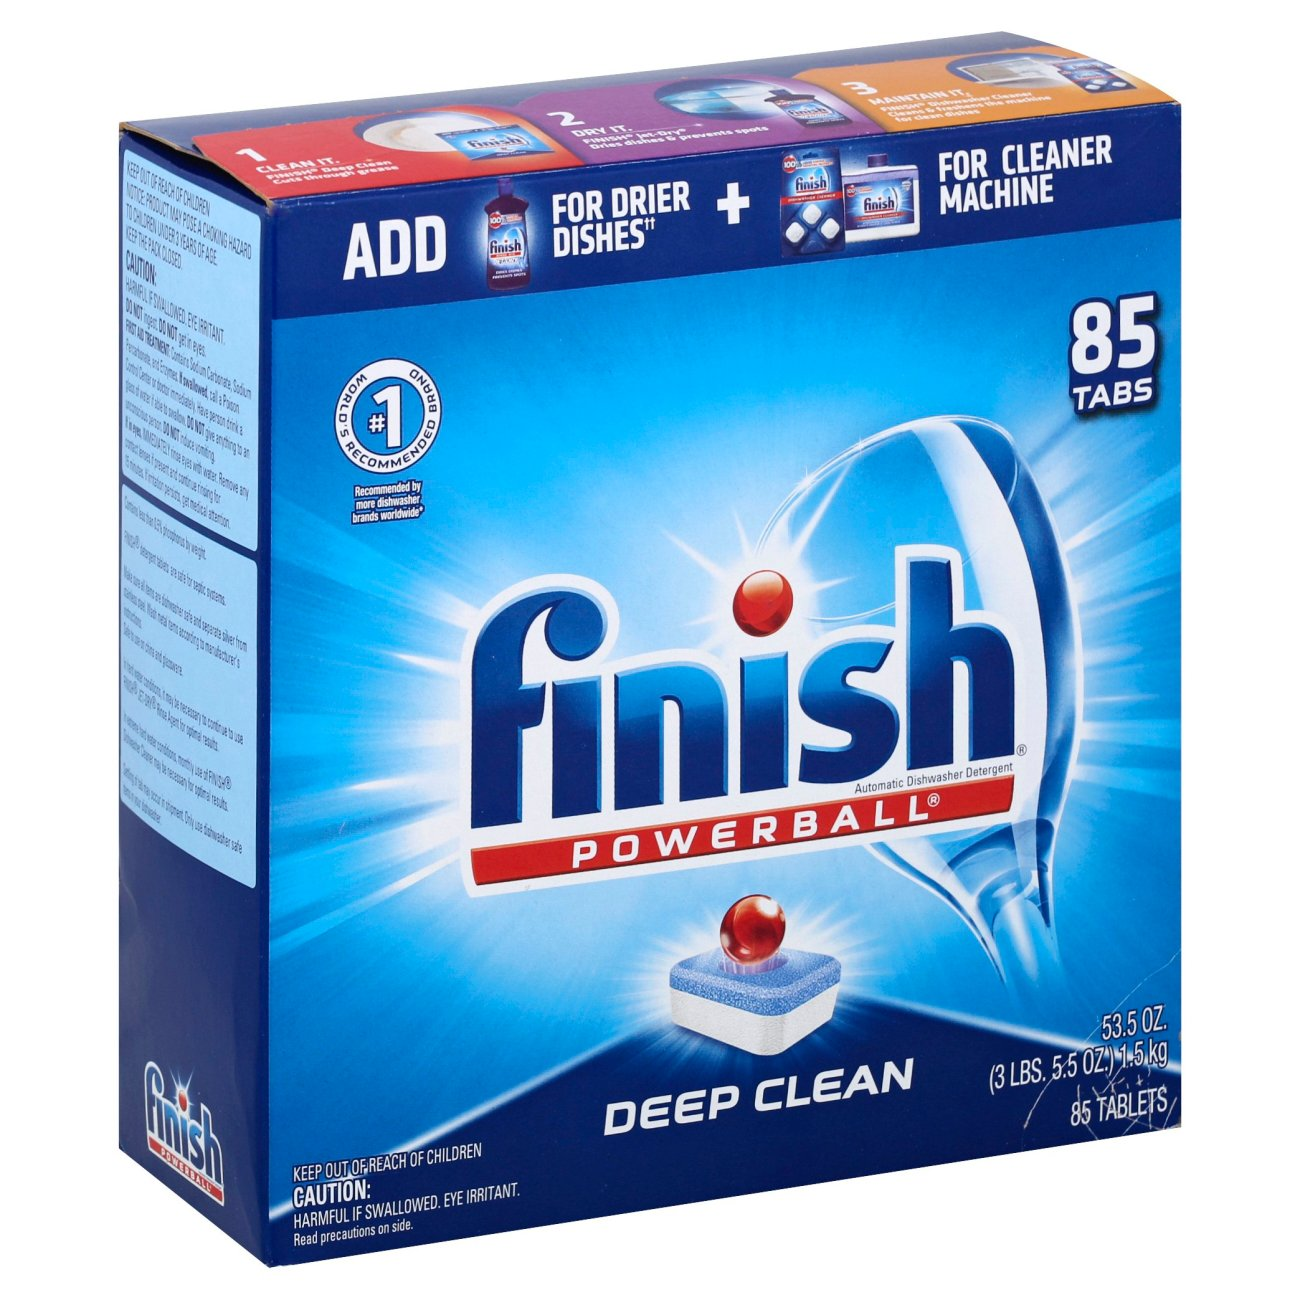 Finish Powerball Deep Clean Dishwasher Detergent Tabs Shop Dish Soap Detergent At H E B